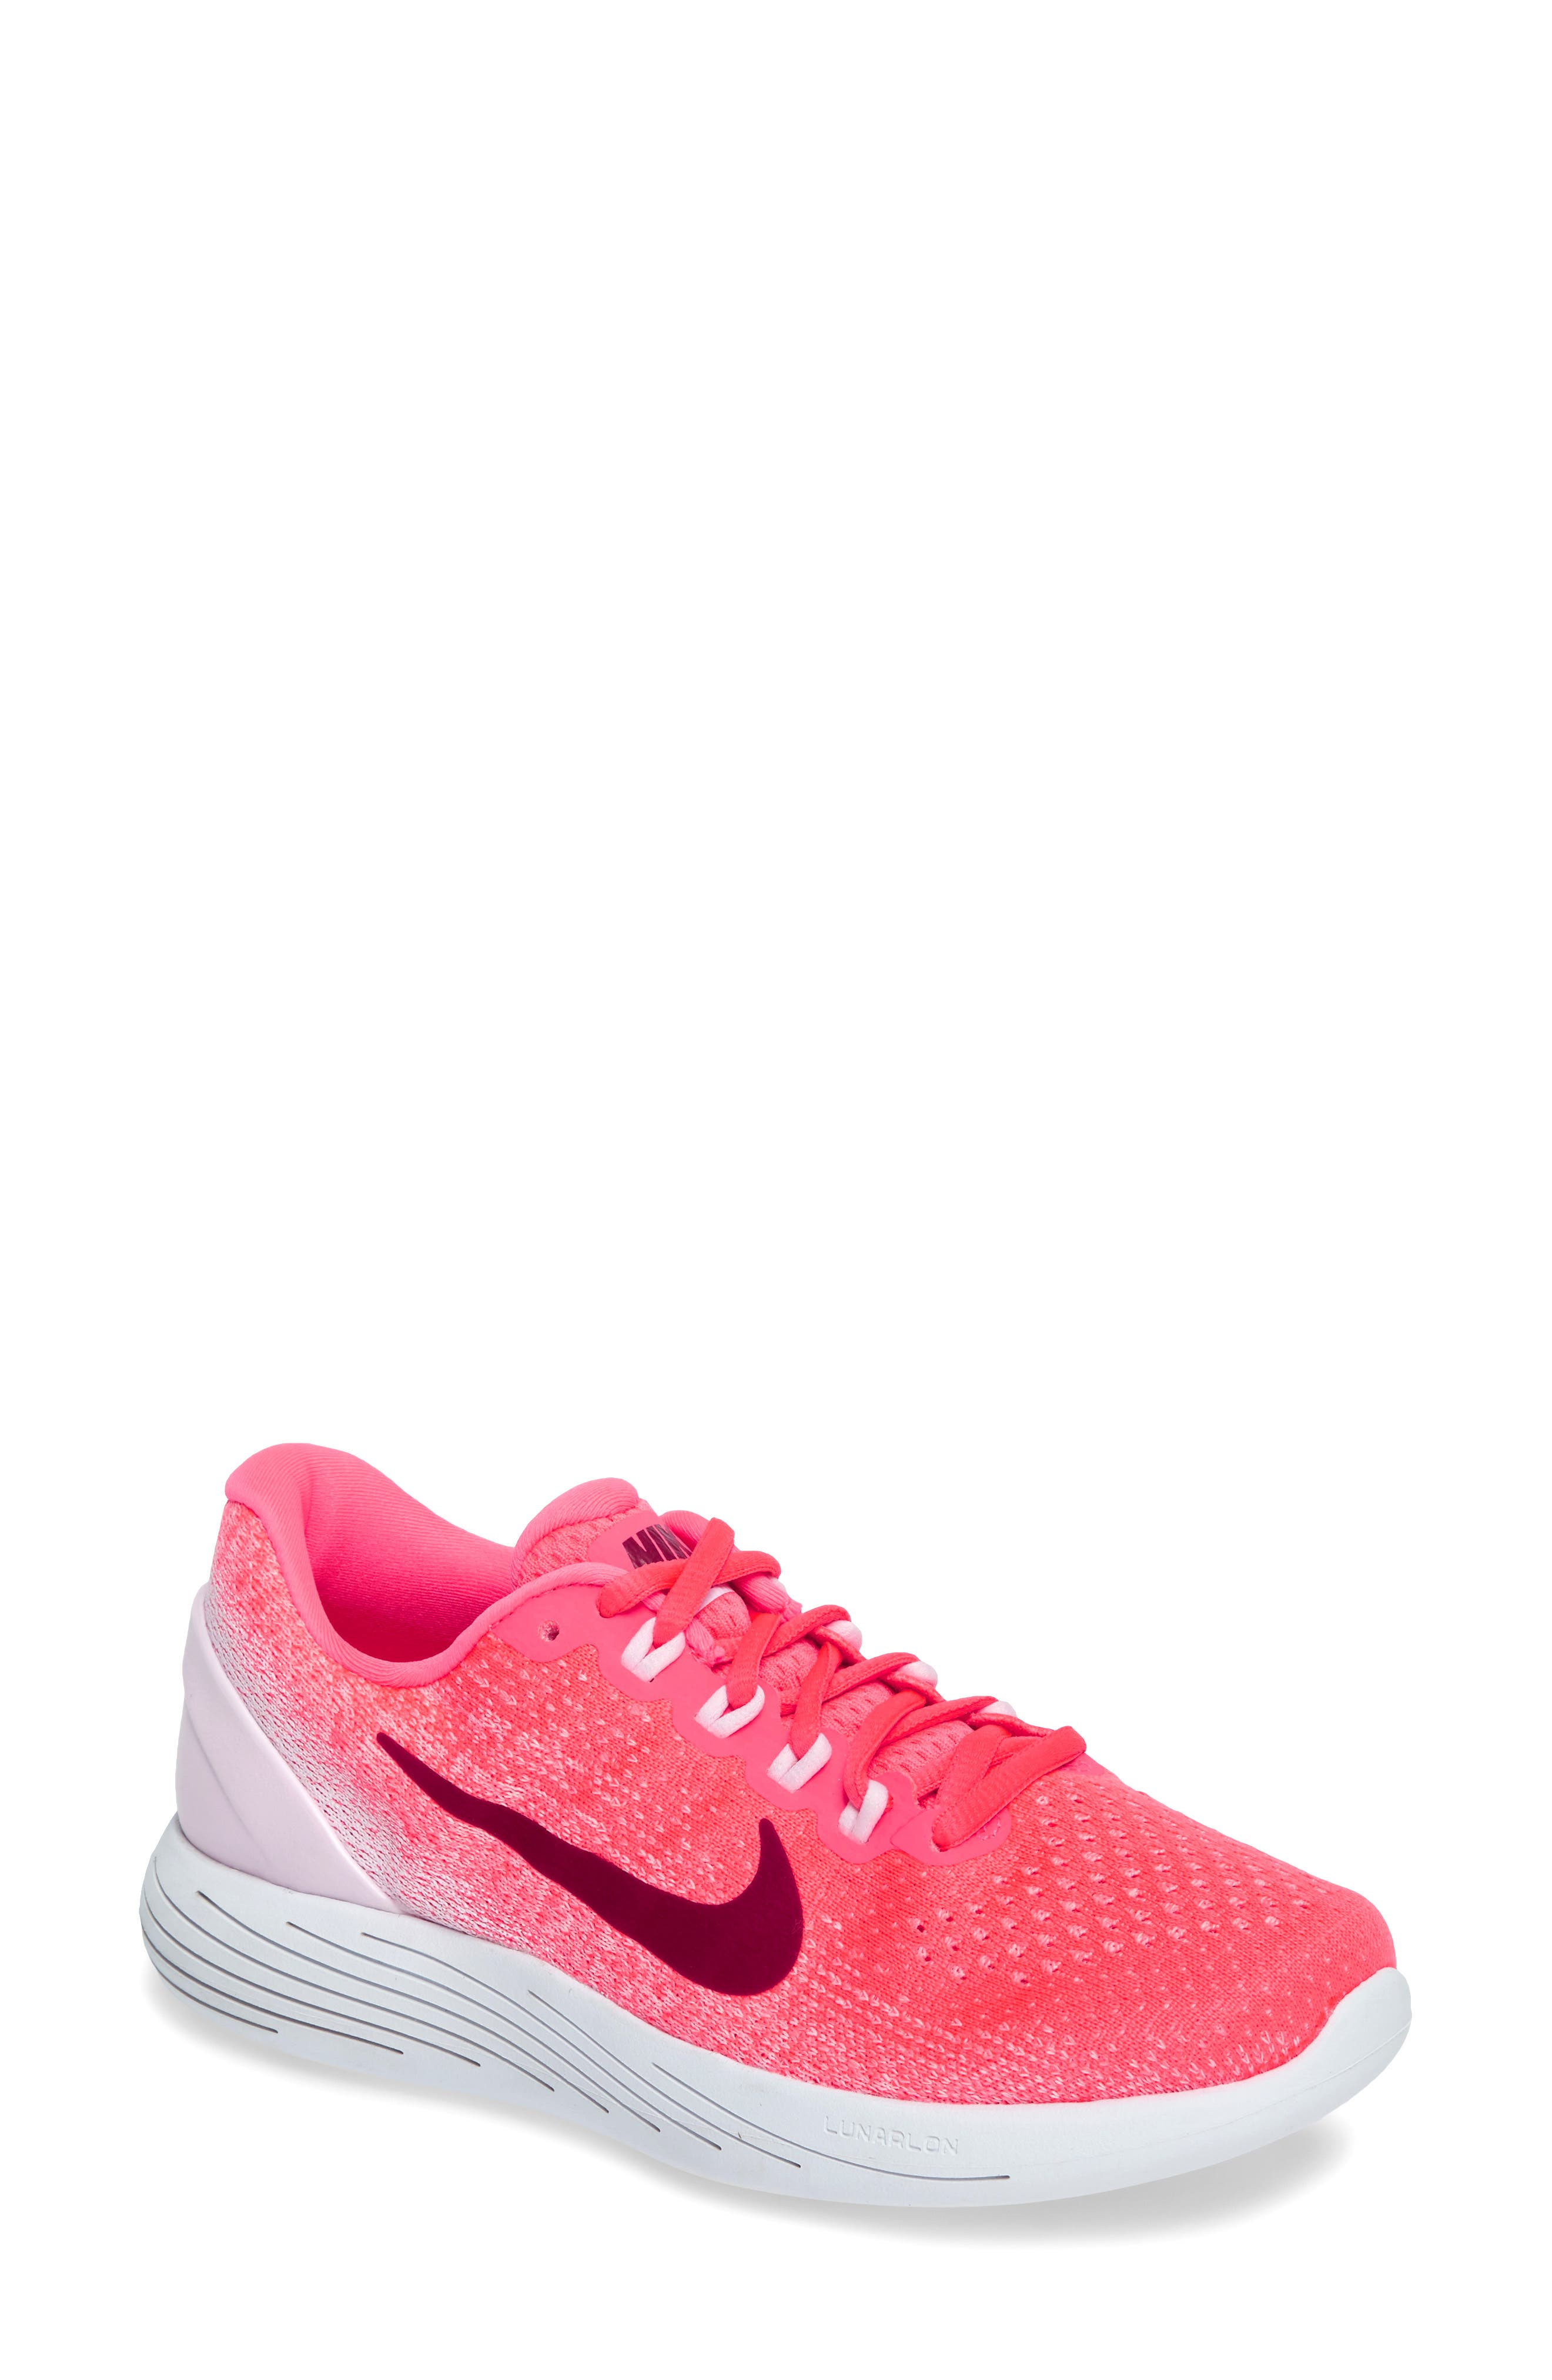 LunarGlide 9 Running Shoe,                         Main,                         color, Hot Punch/ Noble Red/ Arctic